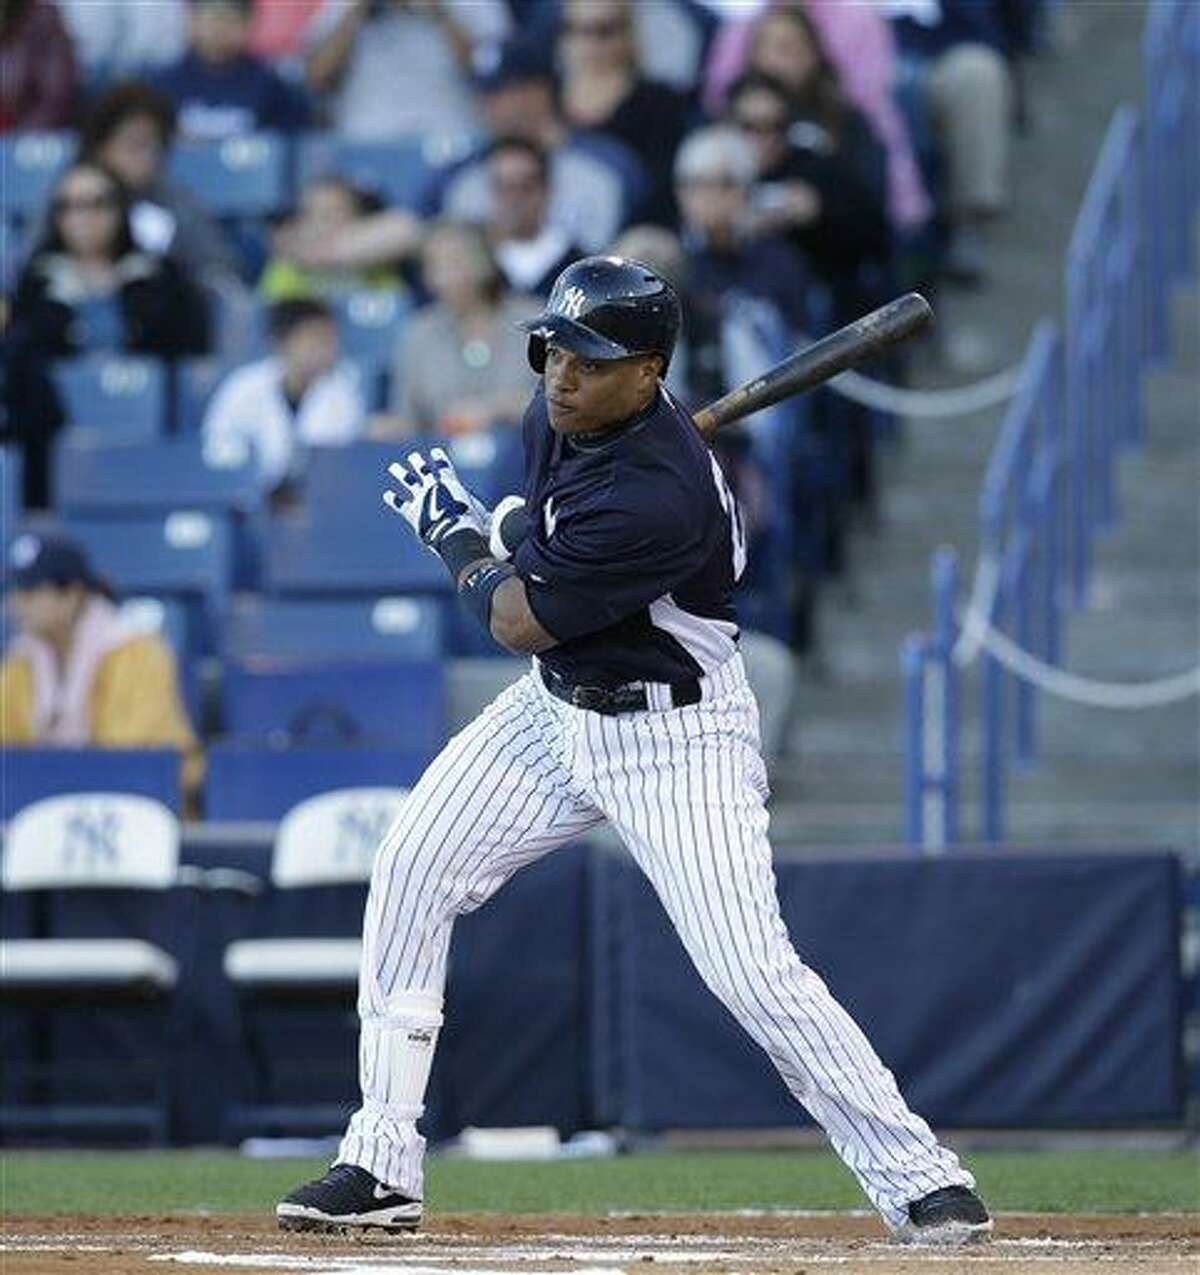 New York Yankees Robinson Cano bats in a spring training baseball game in Tampa, Fla., Thursday, March 21, 2013. (AP Photo/Kathy Willens)